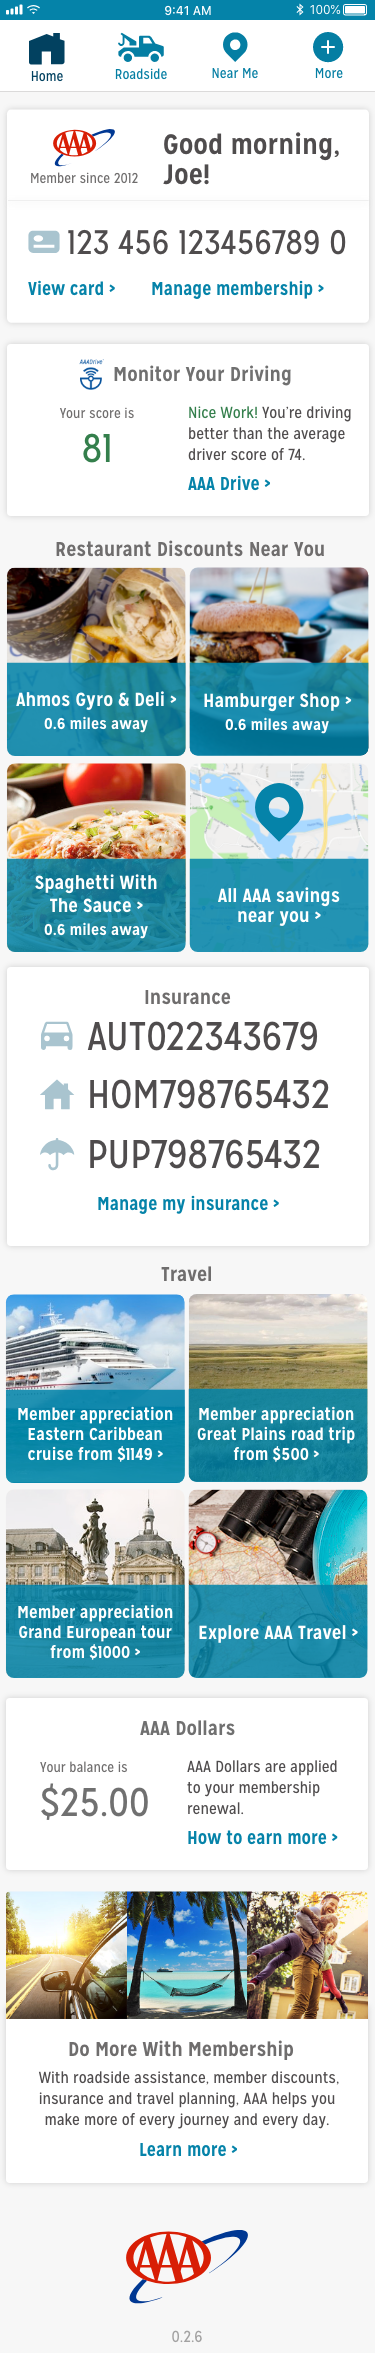 Aaa Mobile App Maps And Directions Road Trip Planner Route Planner